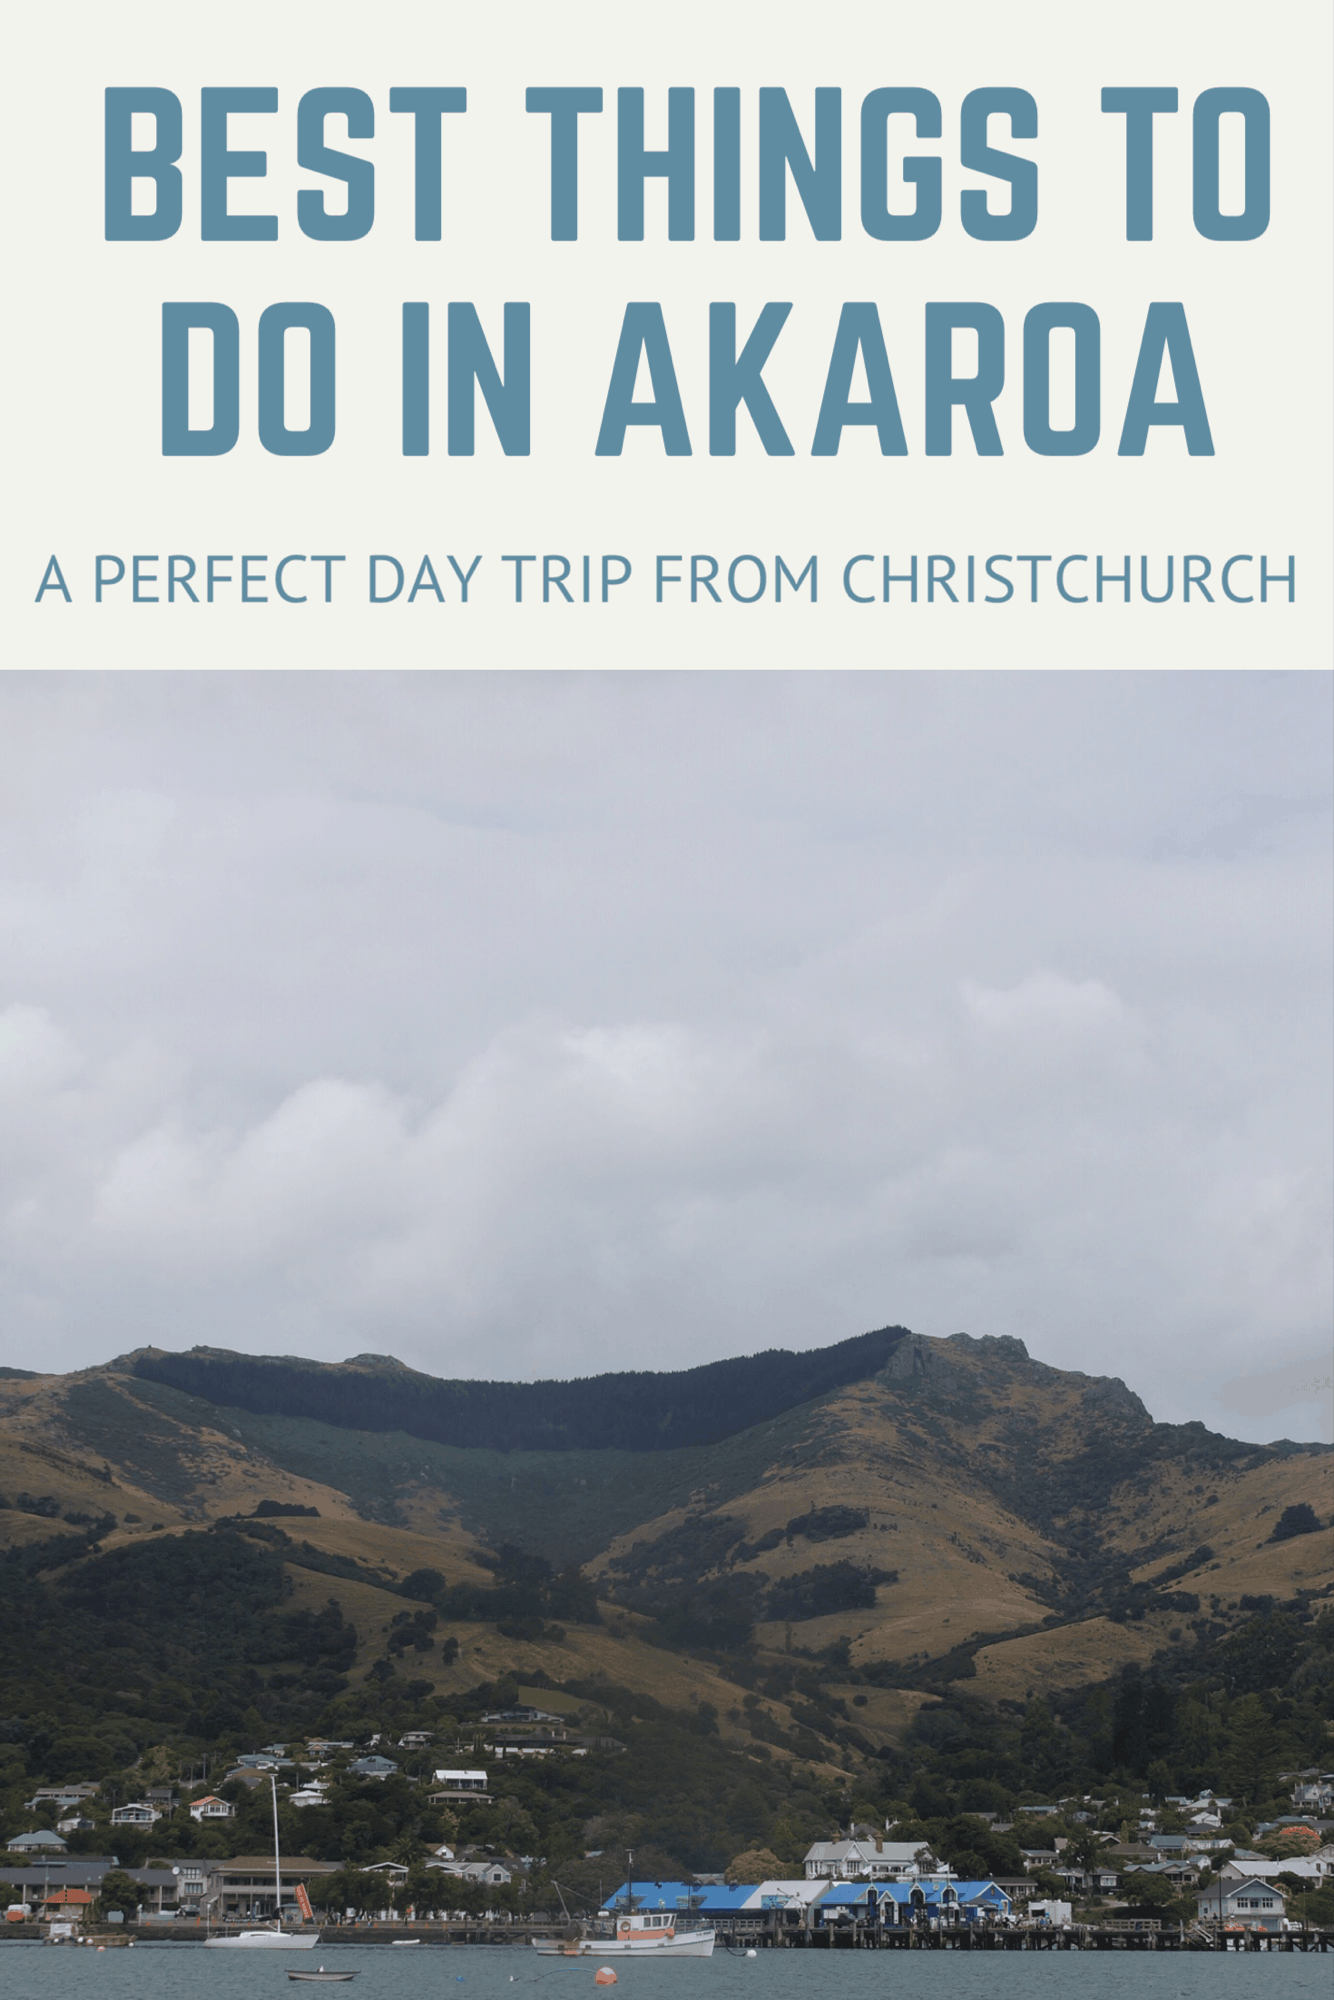 Best Things to Do in Akaroa New Zealand! Akaroa - a Perfect day trip from Christchurch! Wildlife Day tRips from Christchurch including Akaroa best things to do #akaroa #visitnewzealand #visitchristchurch #christchurch #akaroaharbour #akaroacruise #newzealandcruise